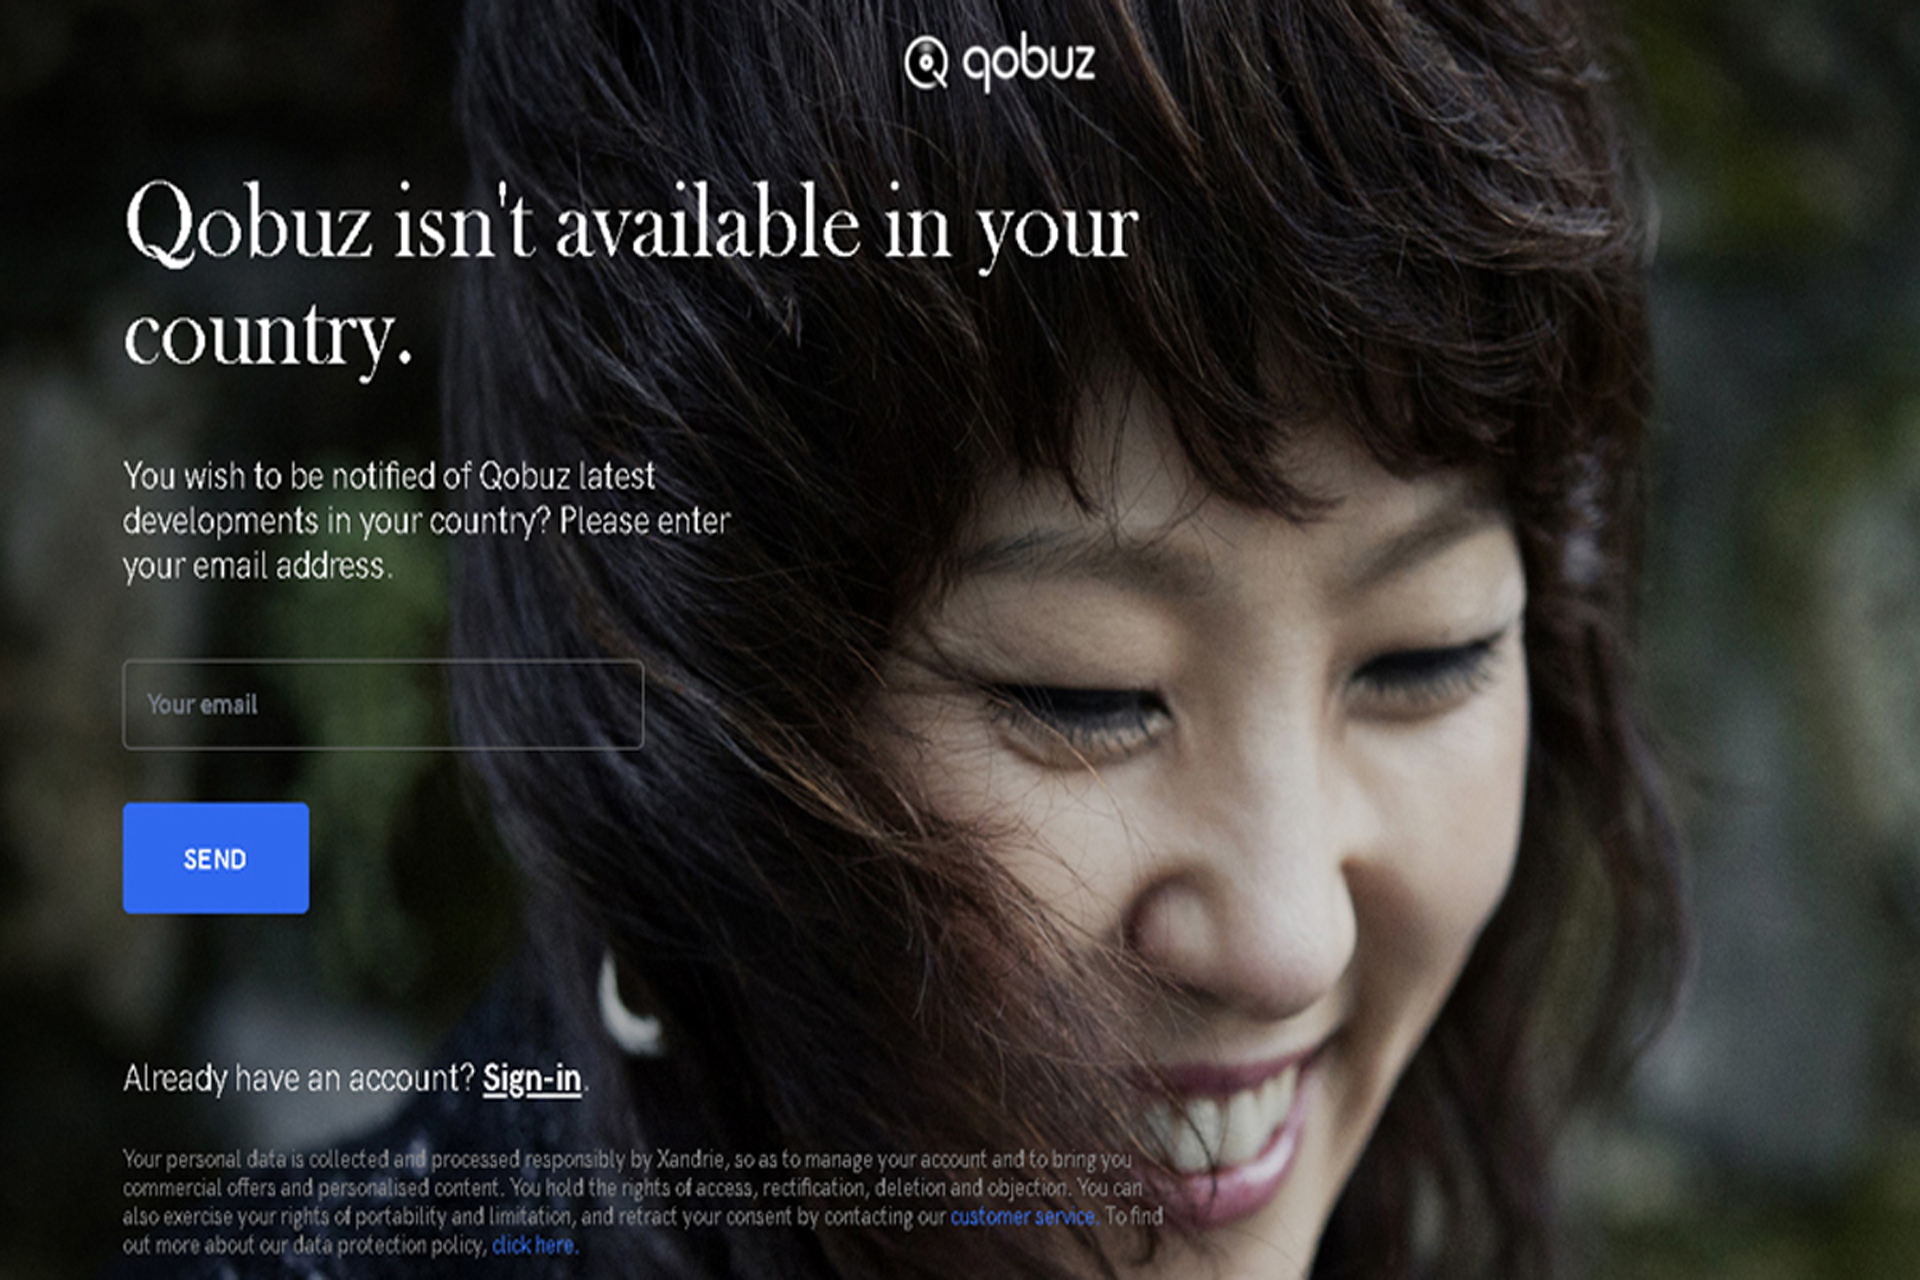 Qobuz not available in your country